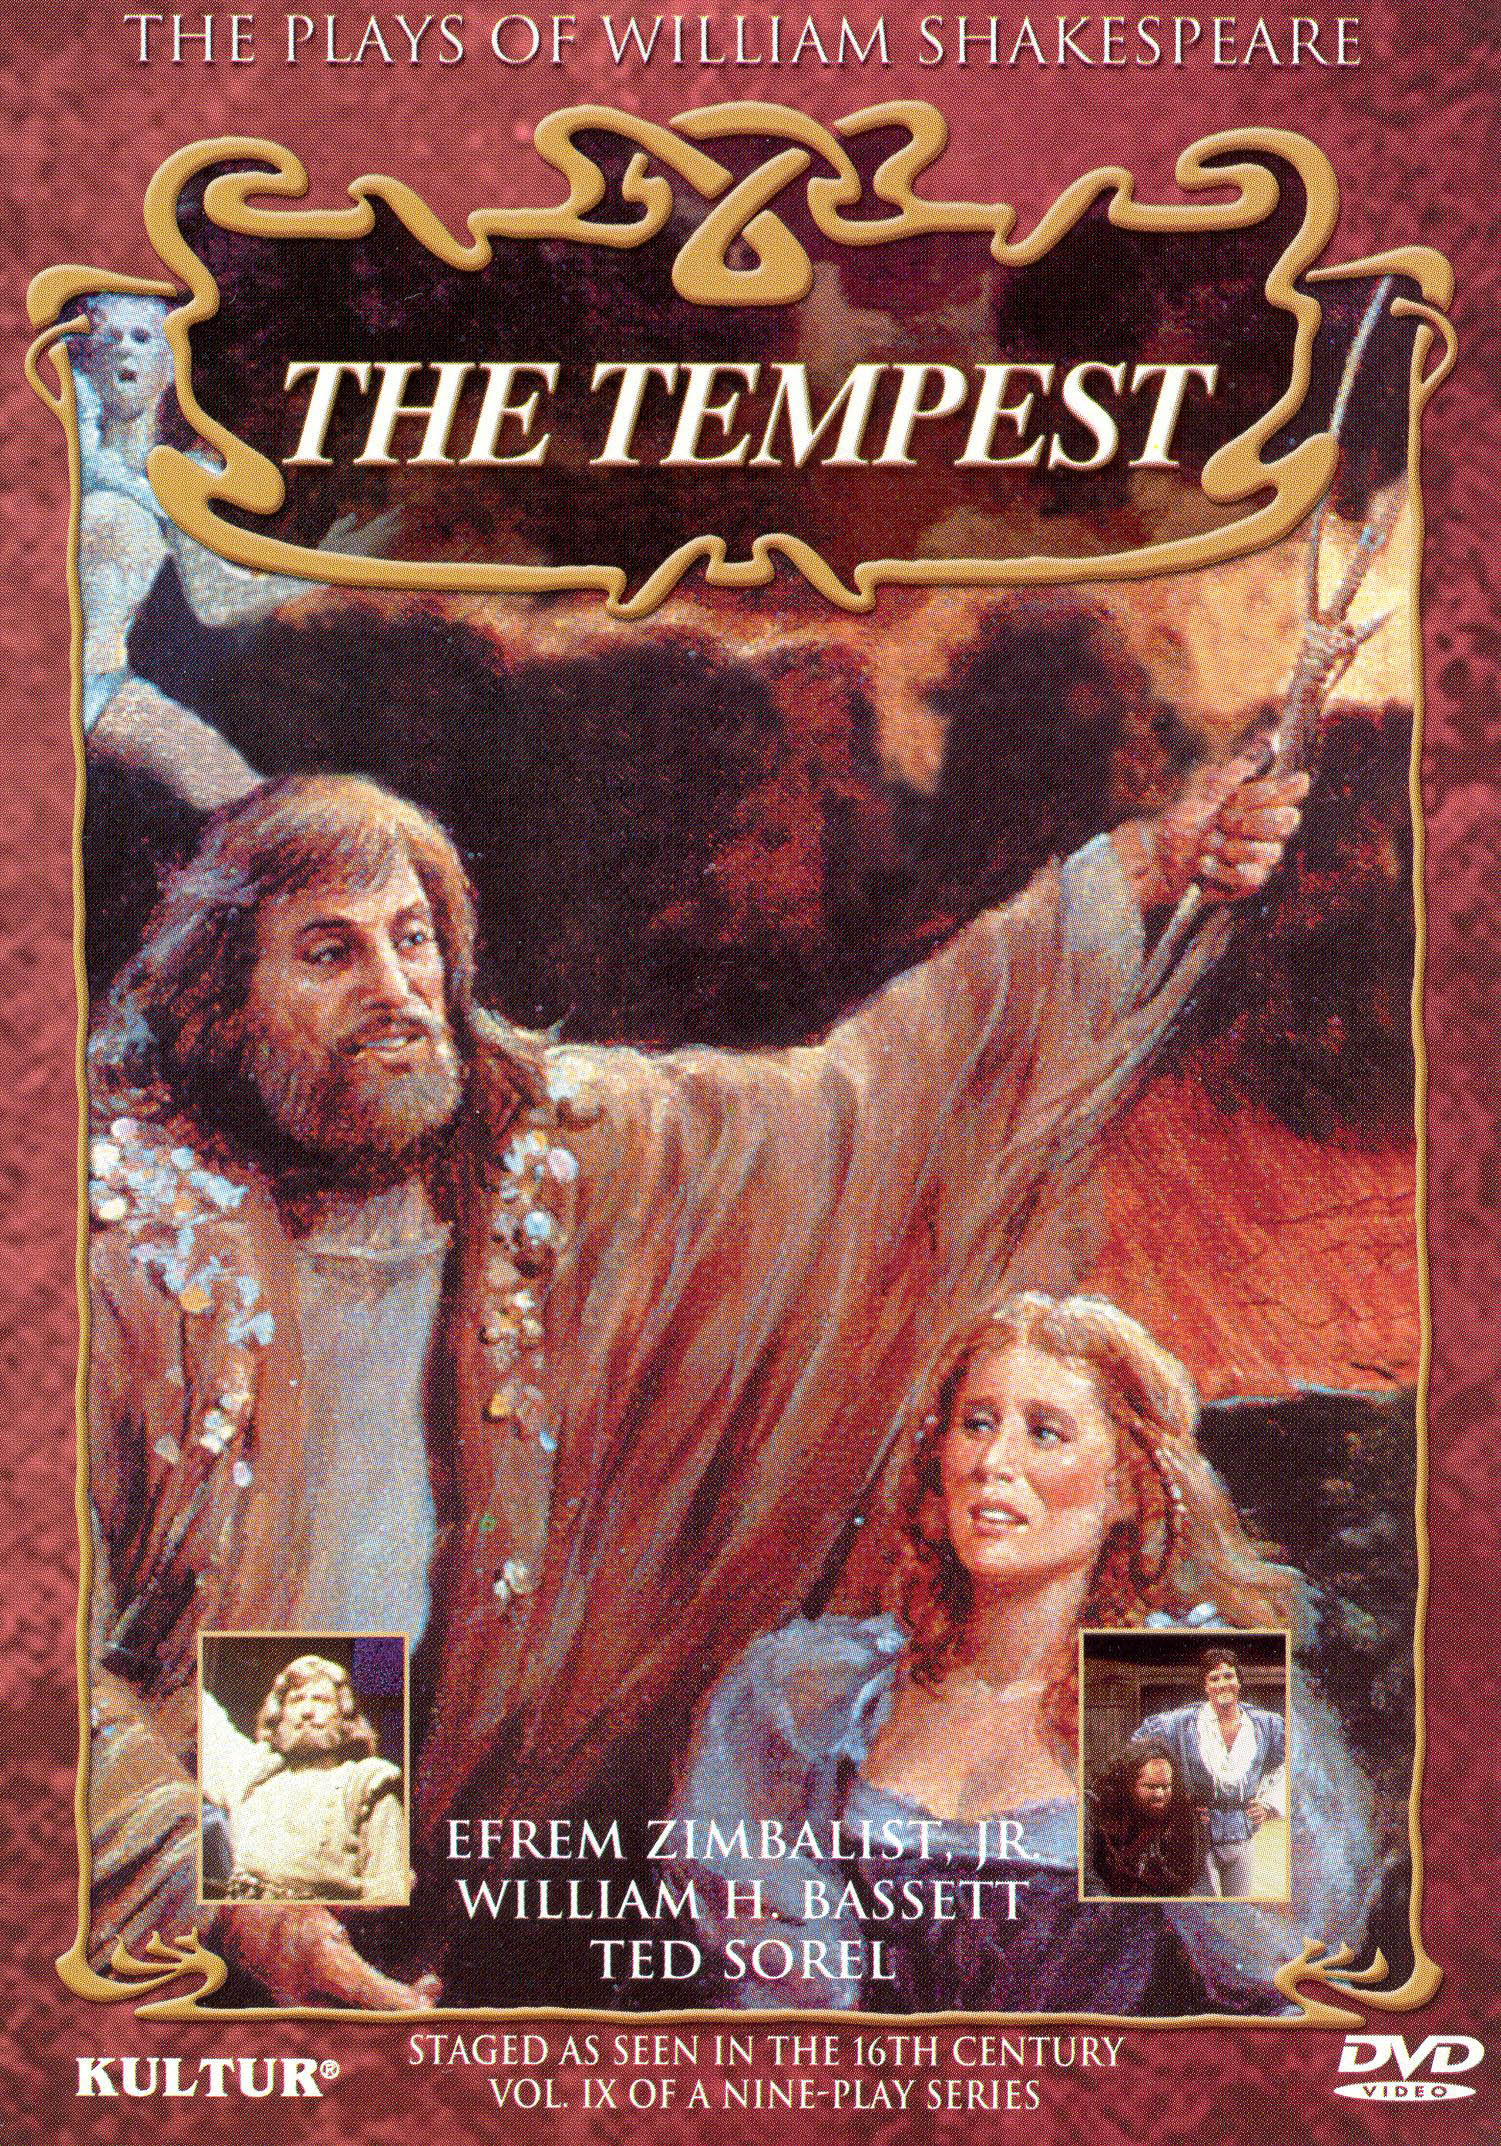 The Plays of William Shakespeare, Vol. 9: The Tempest